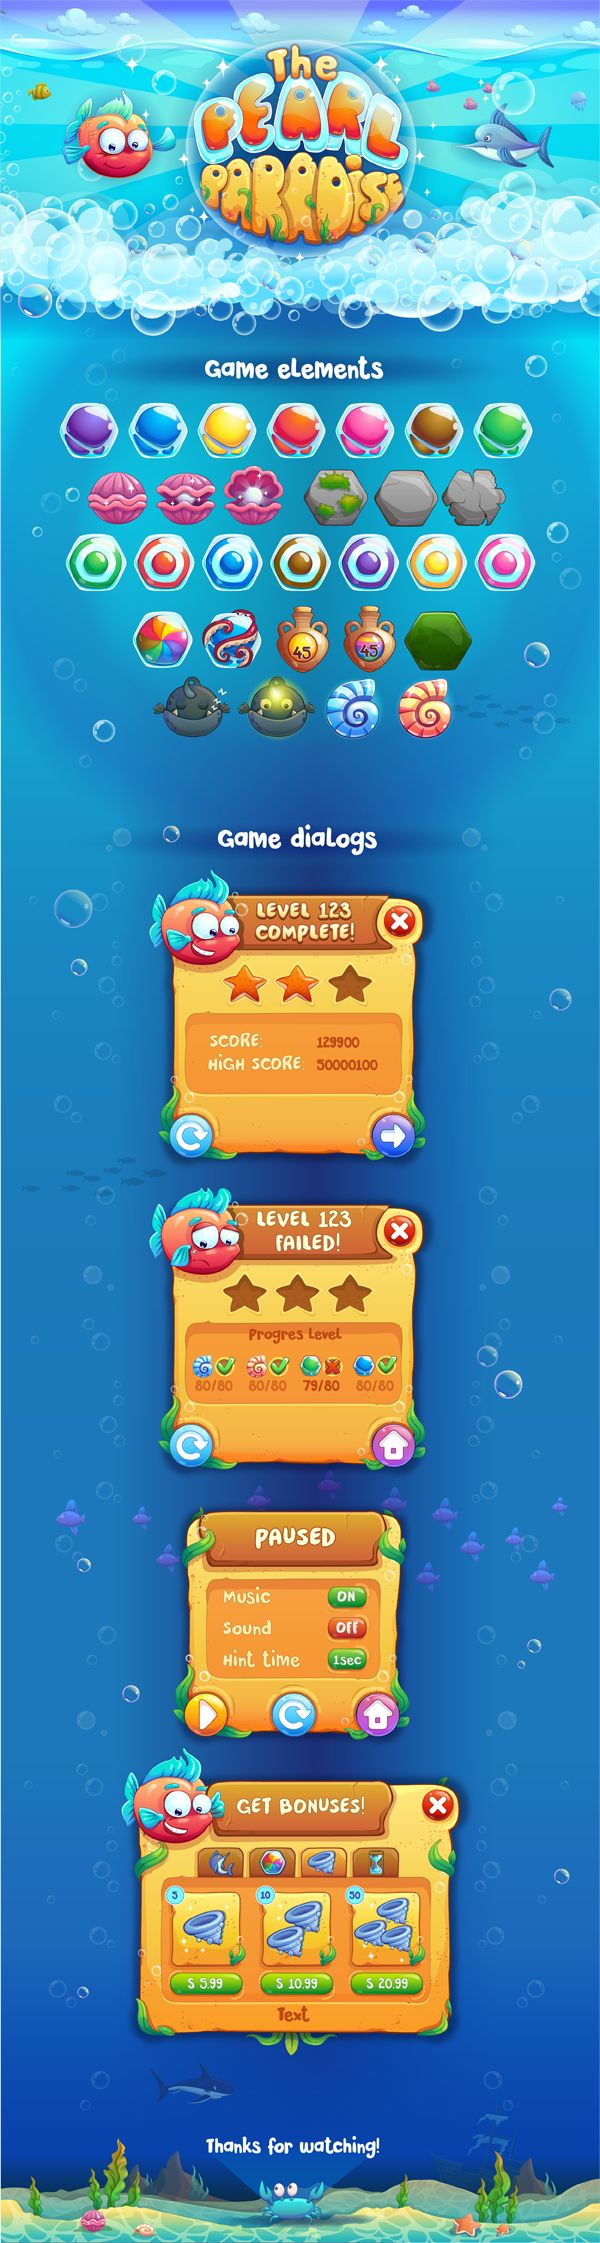 Match-3 game for IOS